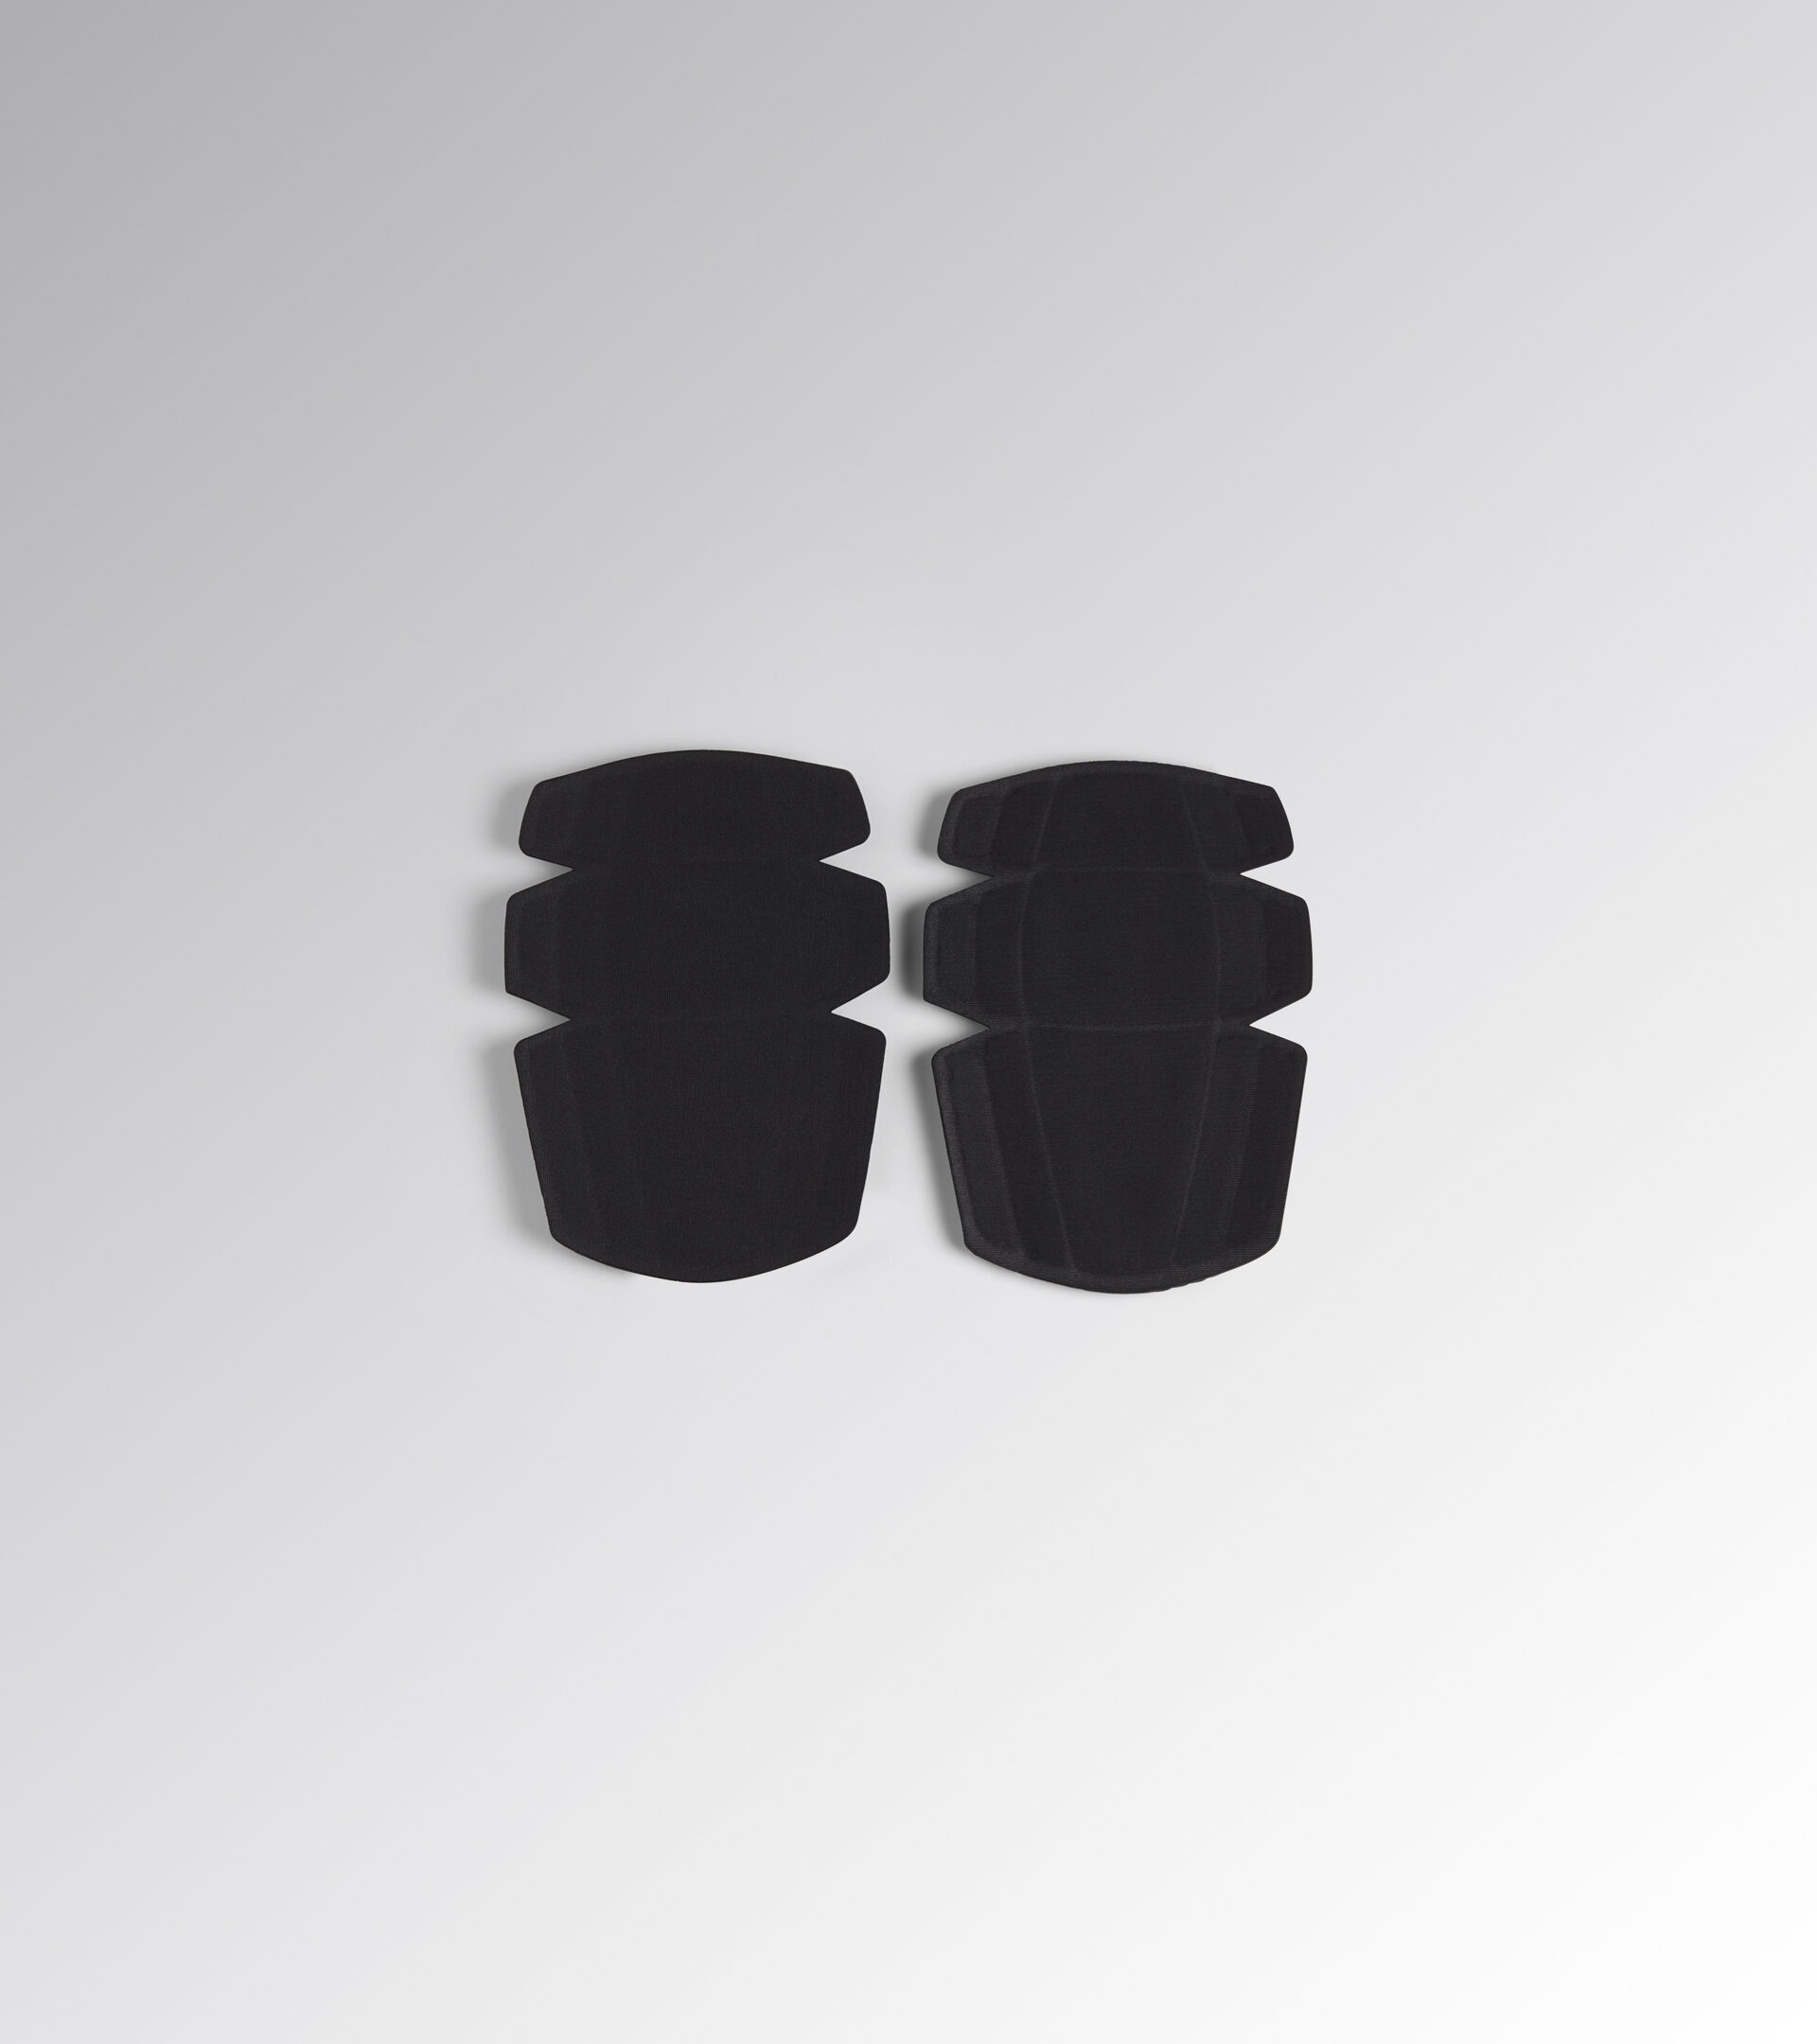 Accessories Utility UNISEX KNEE-PADS UTILITY ANTHRACITE. Utility